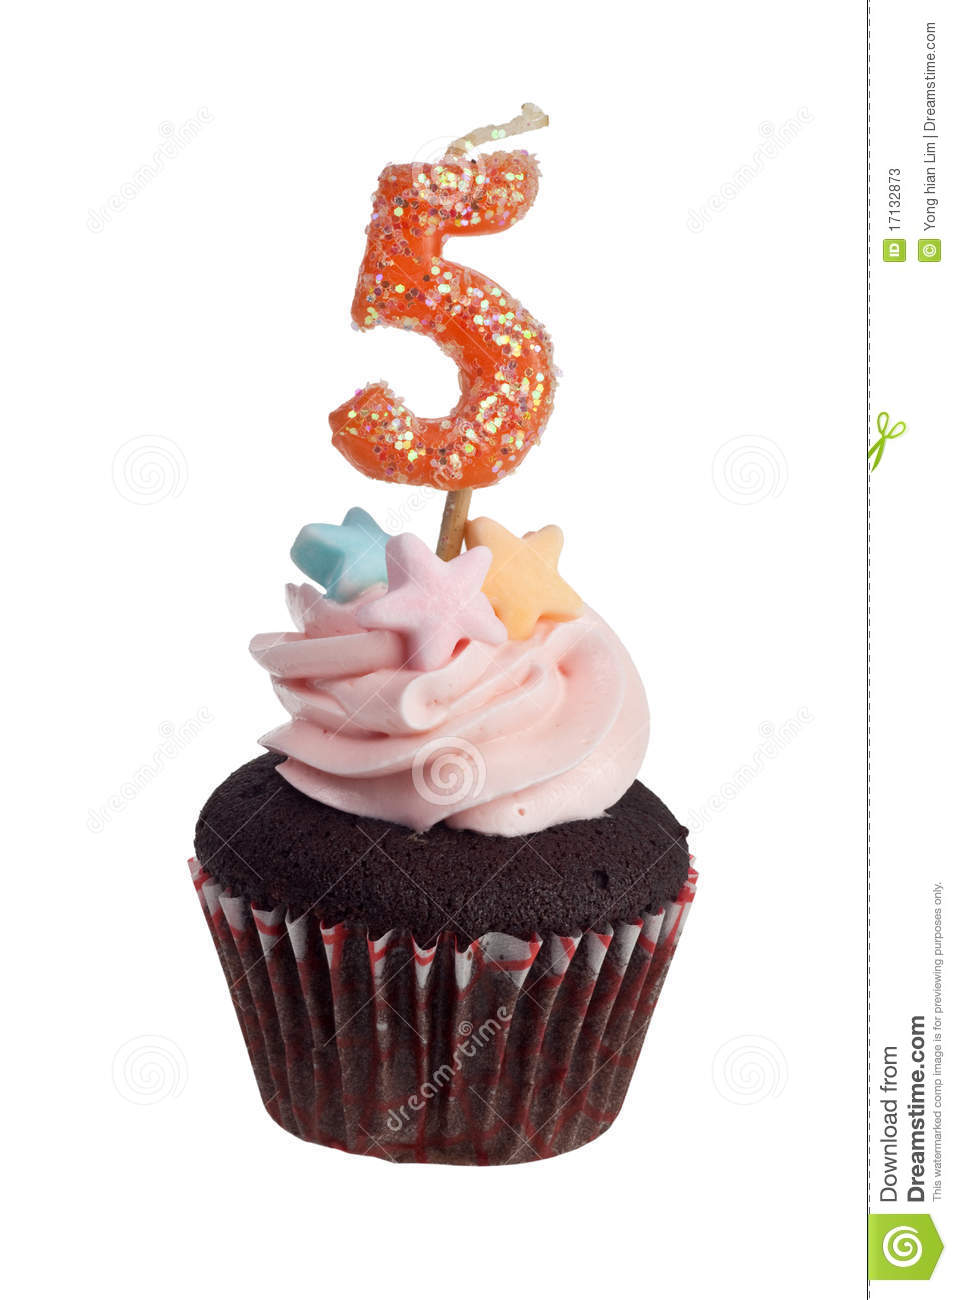 Cupcake With Birthday Candle For Five Year Old Stock